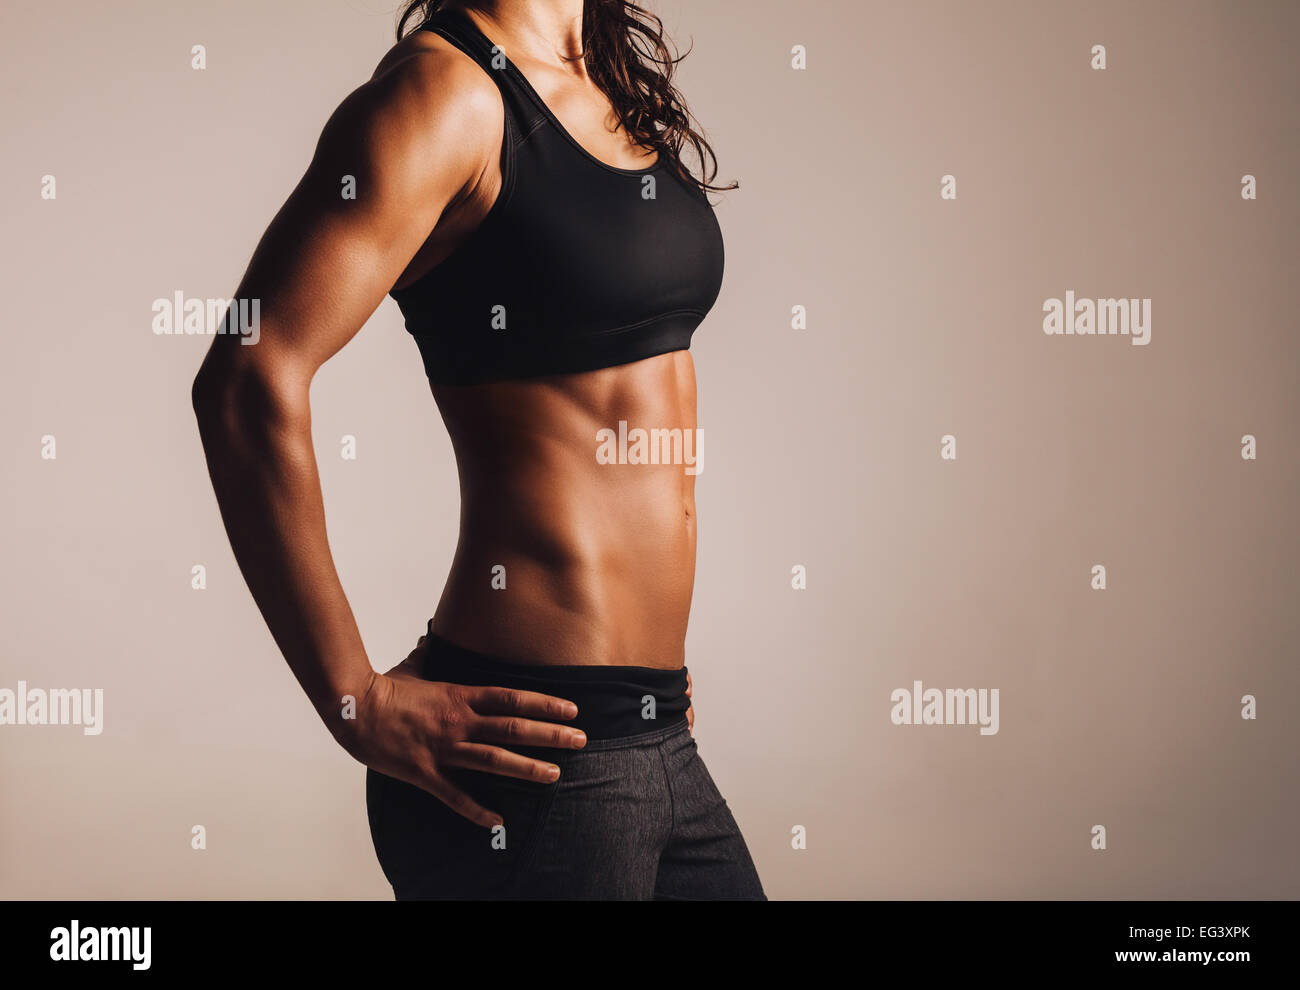 Cropped shot of fit woman's torso with her hands on hips. Female with perfect abdomen muscles. - Stock Image